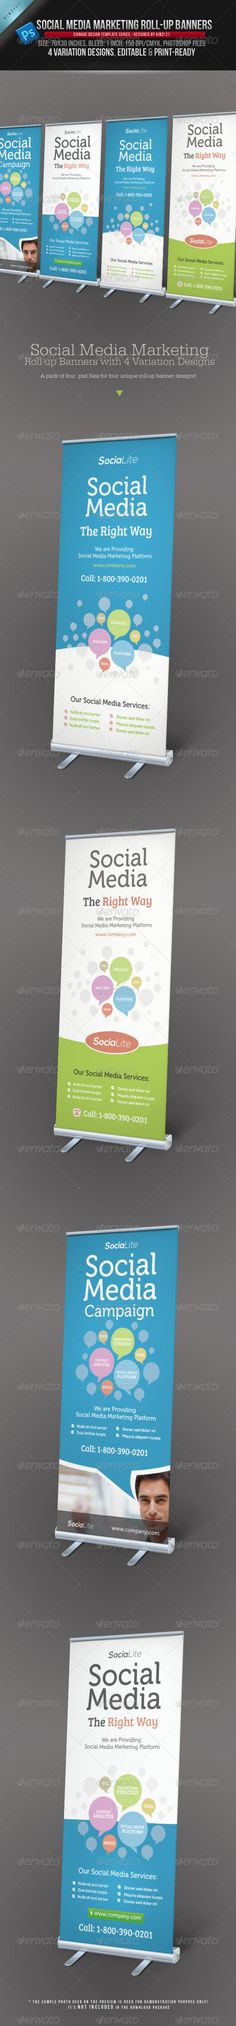 Social Media Marketing Roll-up Banners - the template files can be downloaded here on Graphic River: http://graphicriver.net/item/social-media-marketing-rollup-banners/3907853?r=kinzi21